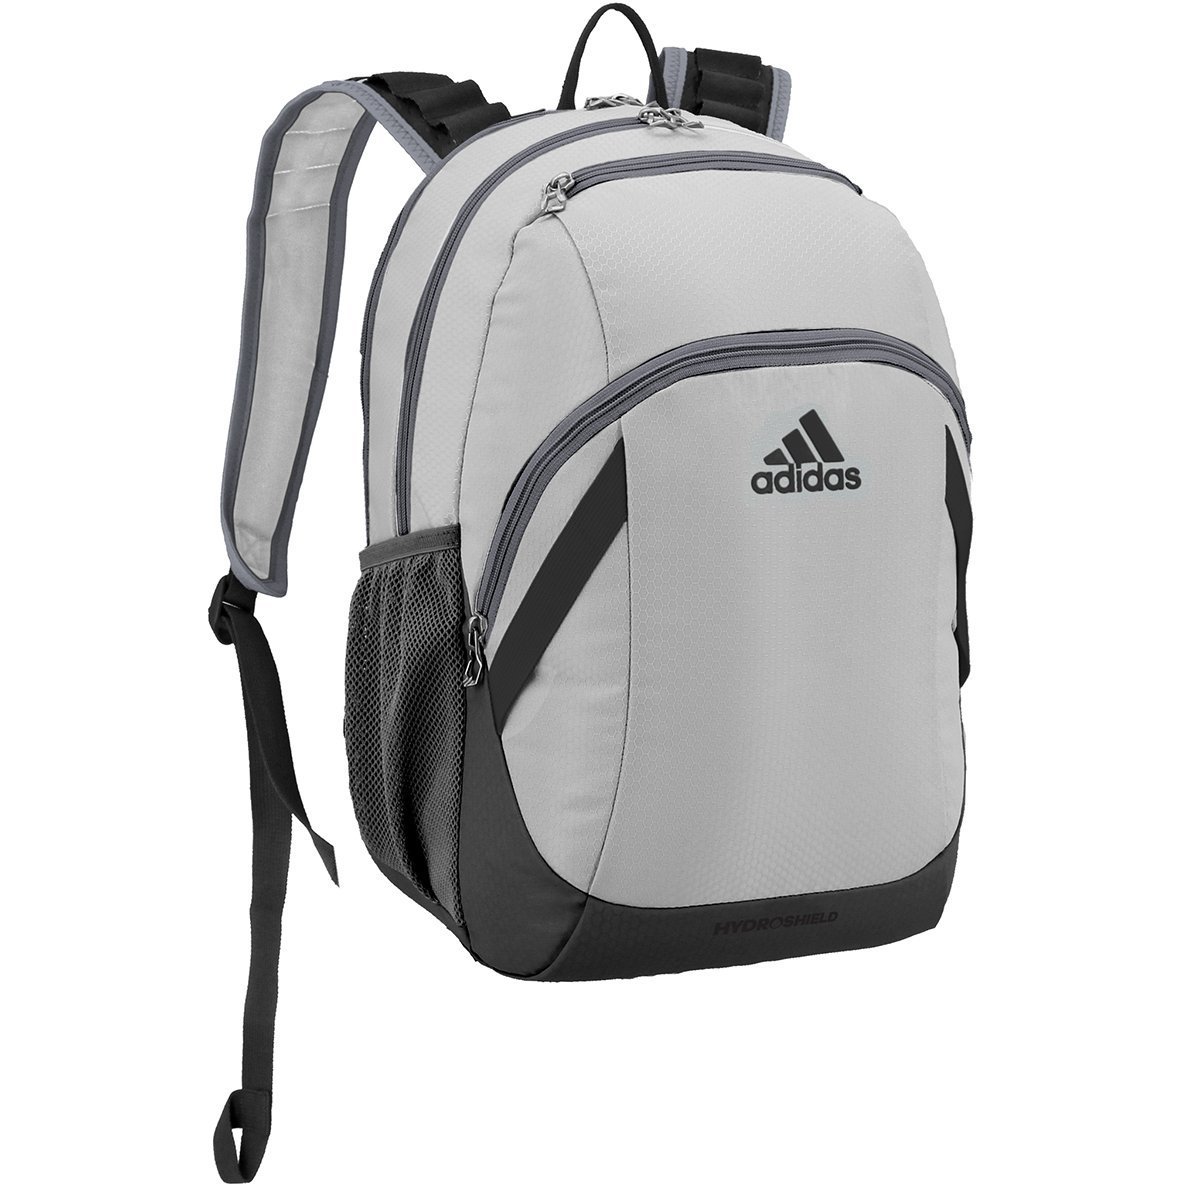 6ec417c596 adidas Pace Backpack